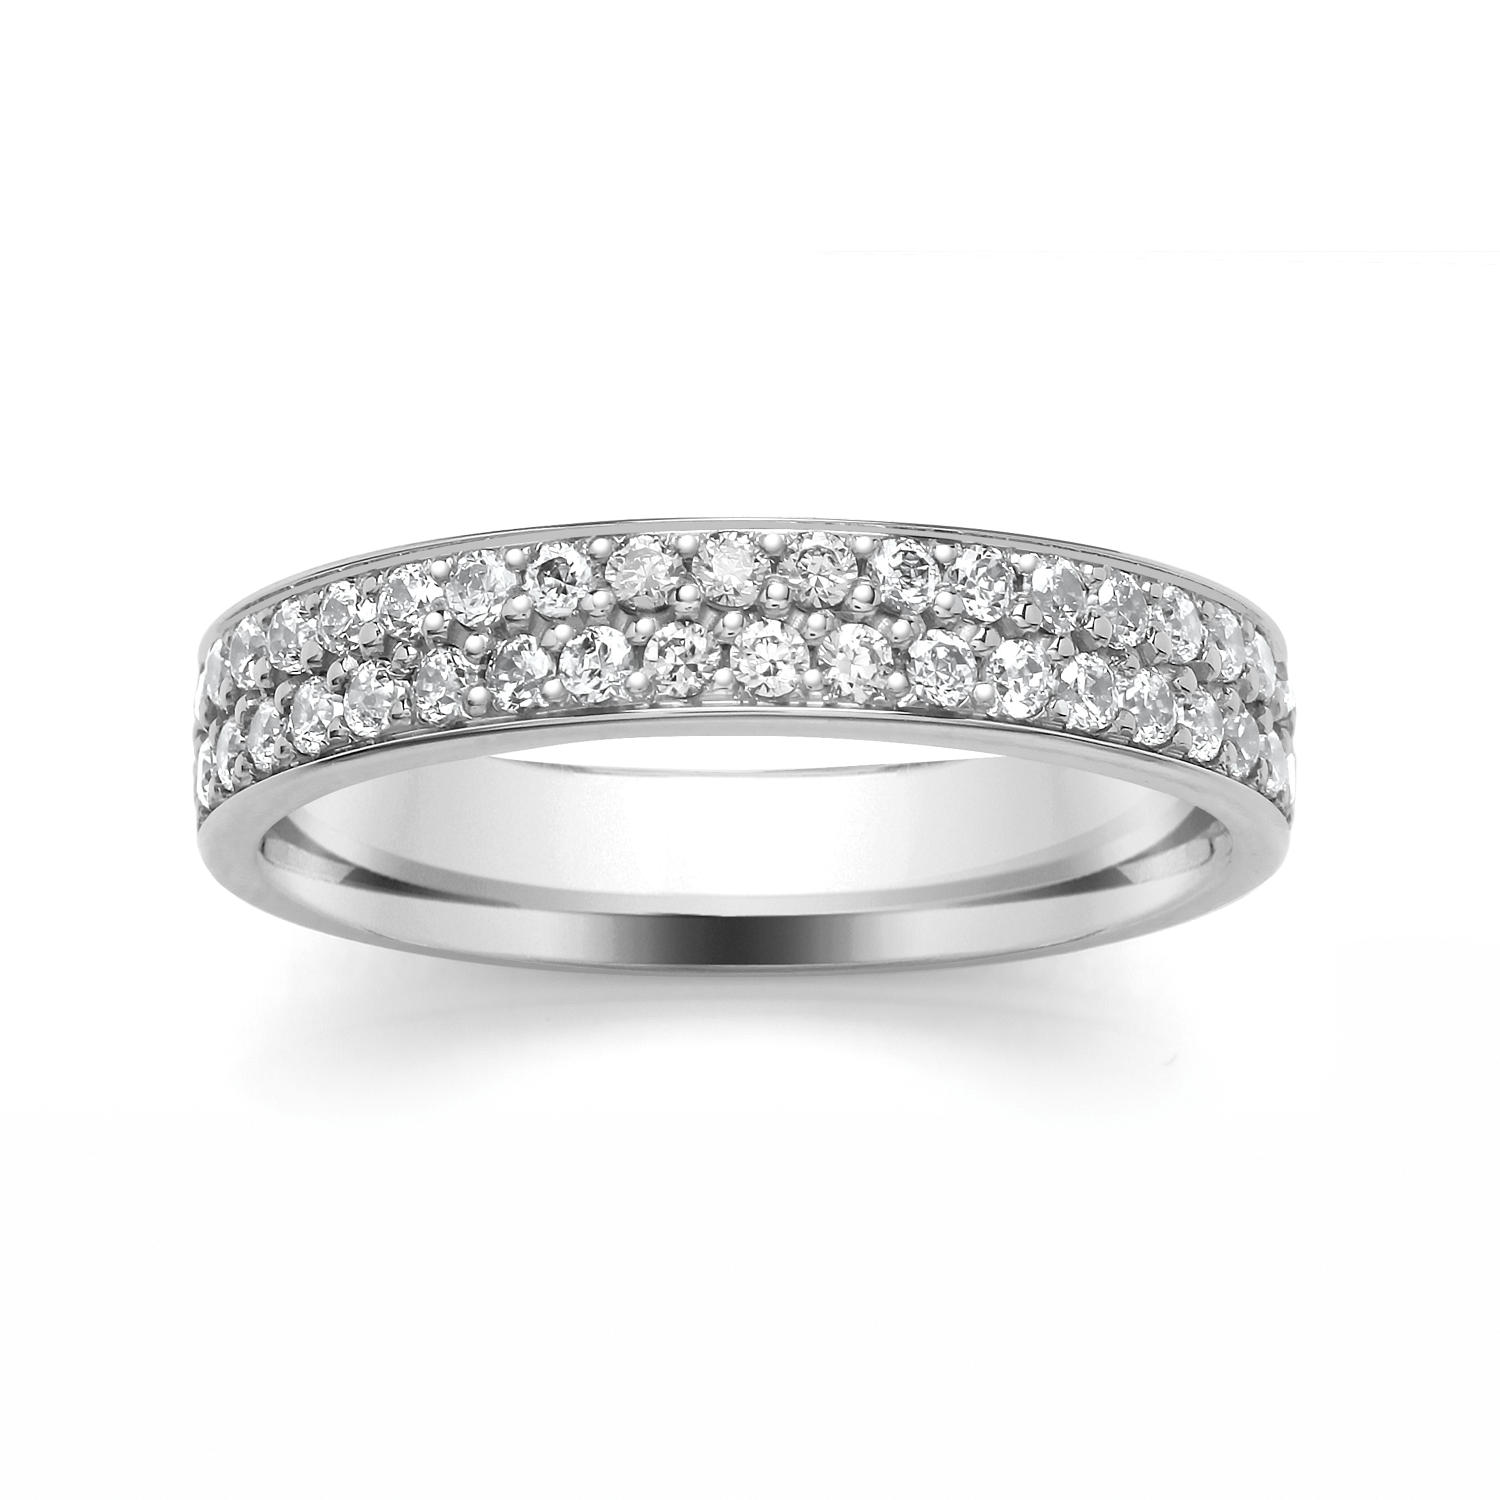 4mm Double Row Diamond Ring, Grain Set Ring